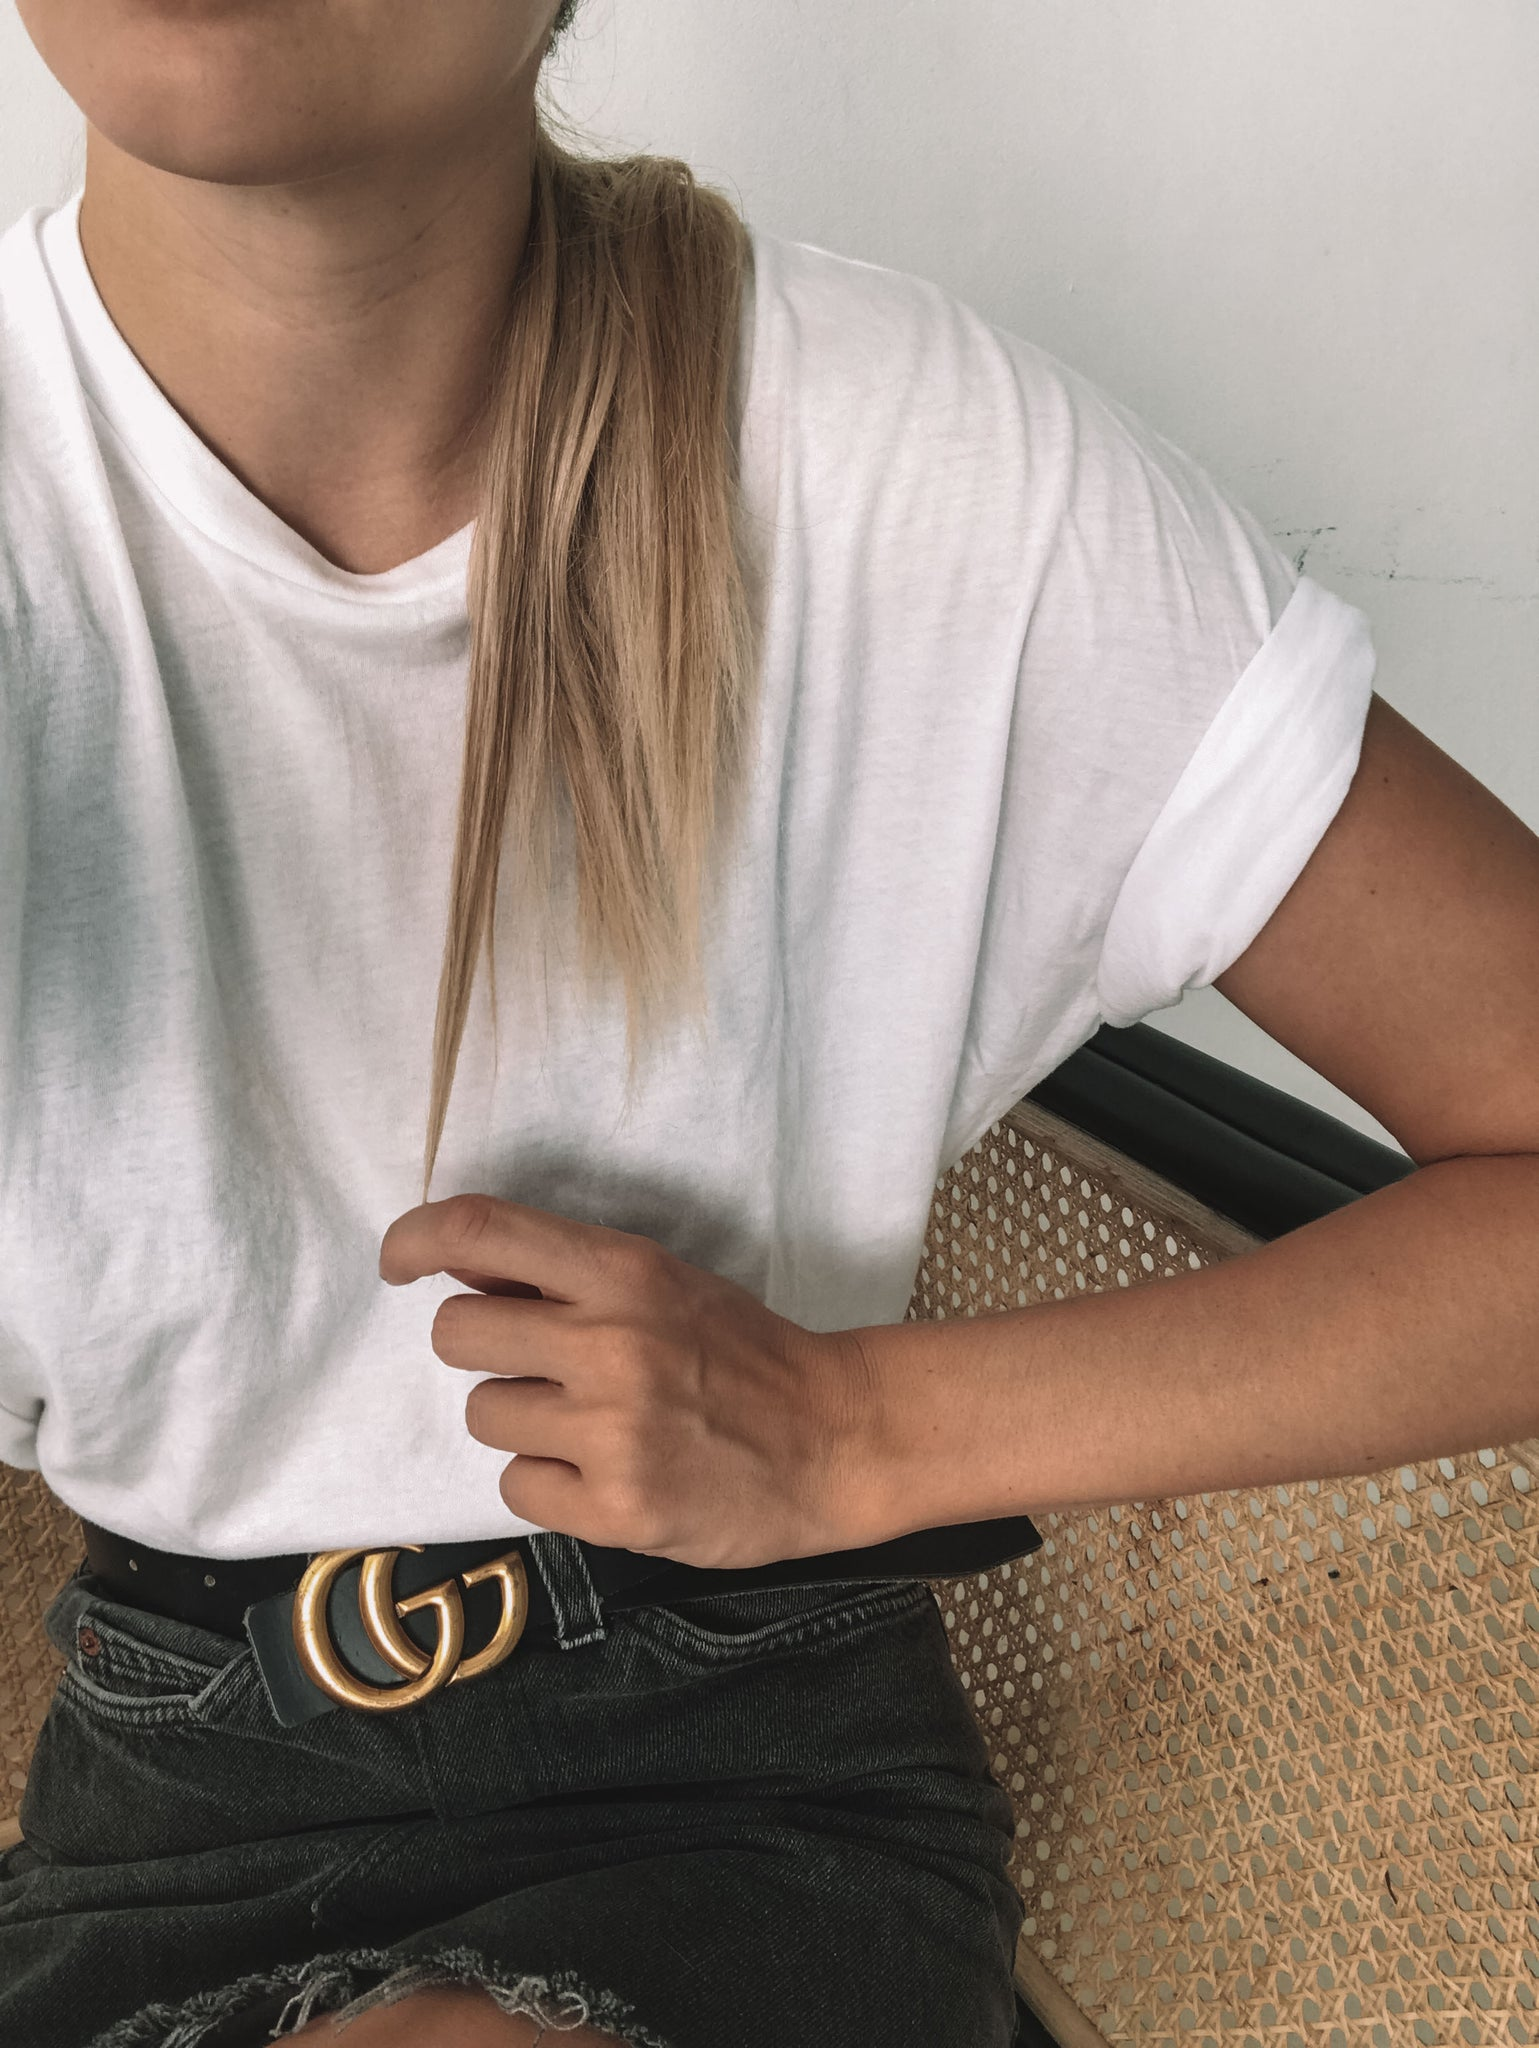 5 Ways How To Wear A White T-Shirt - Les Basics